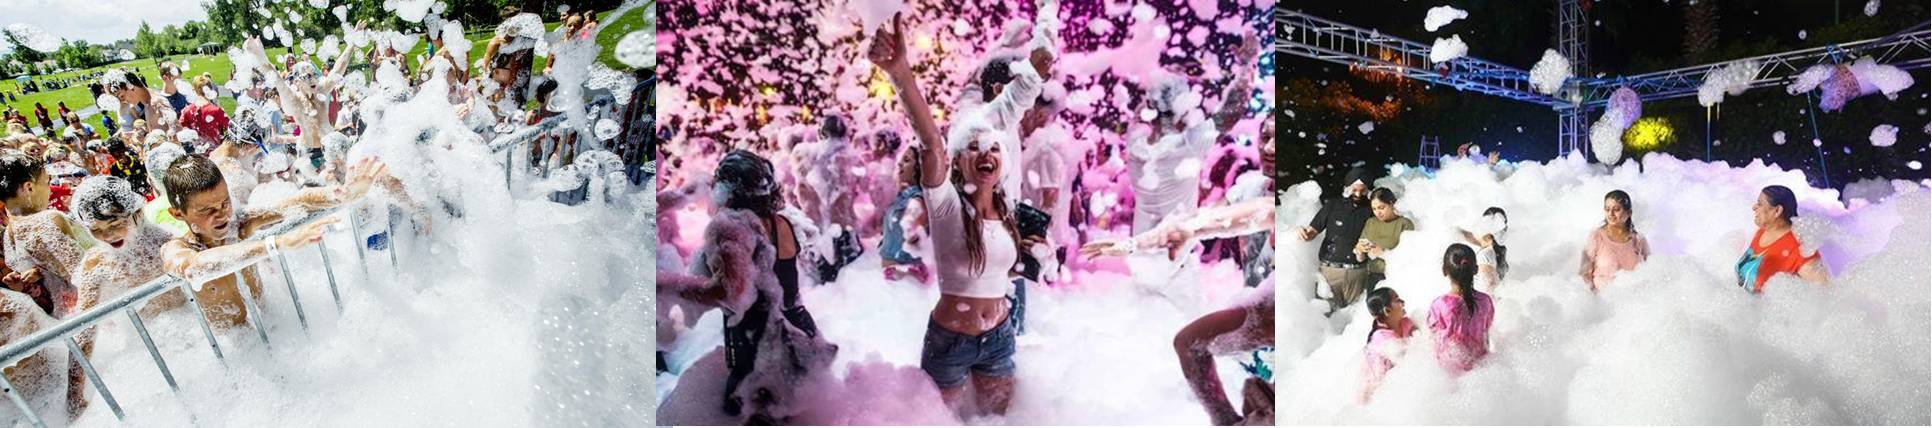 Foam party machine rental in Houston, Texas